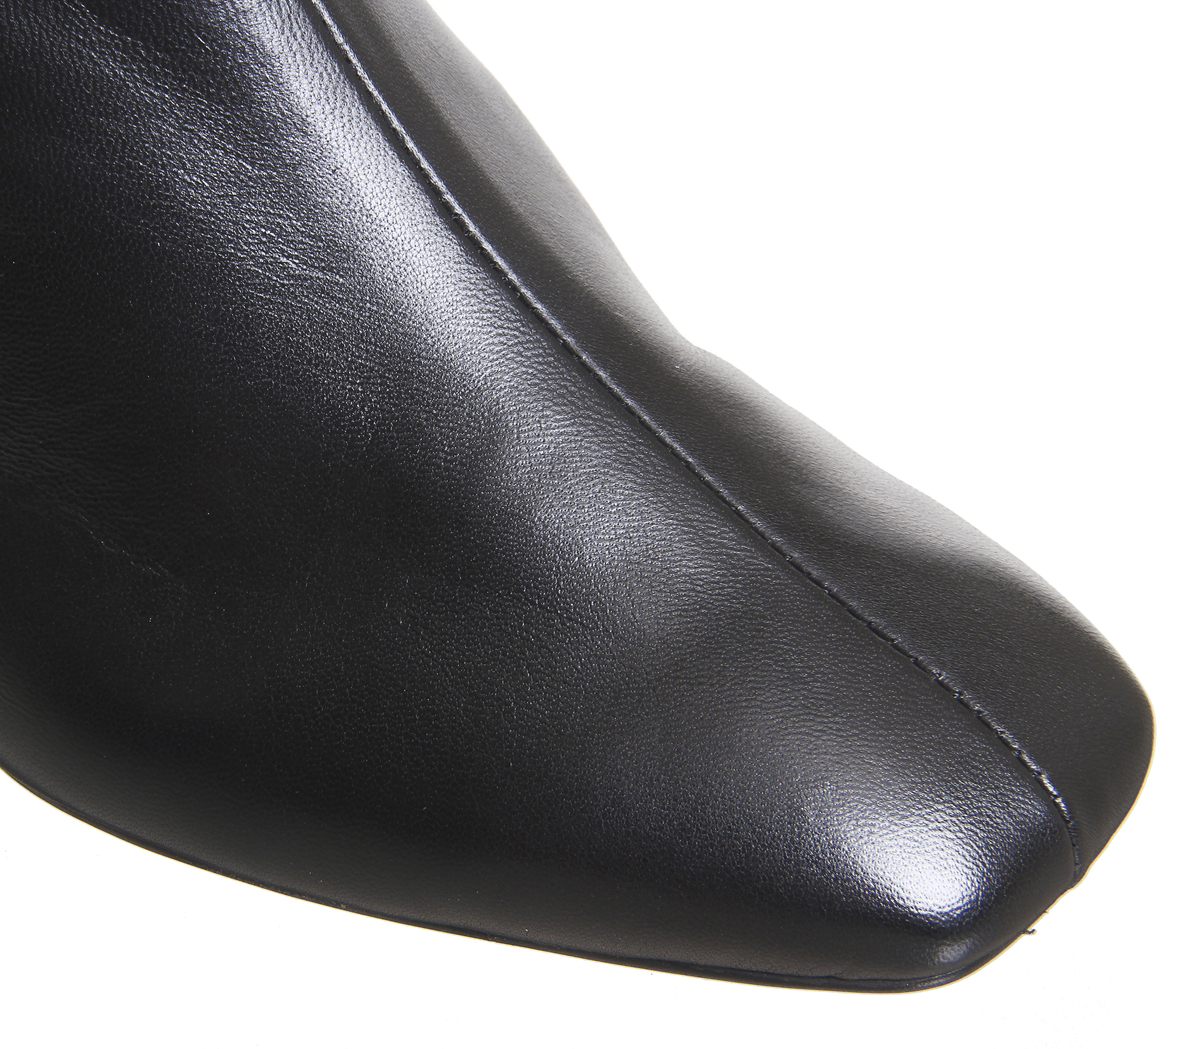 Womens Office Apricot Square Toe Block Heel Boots Black Leather Boots